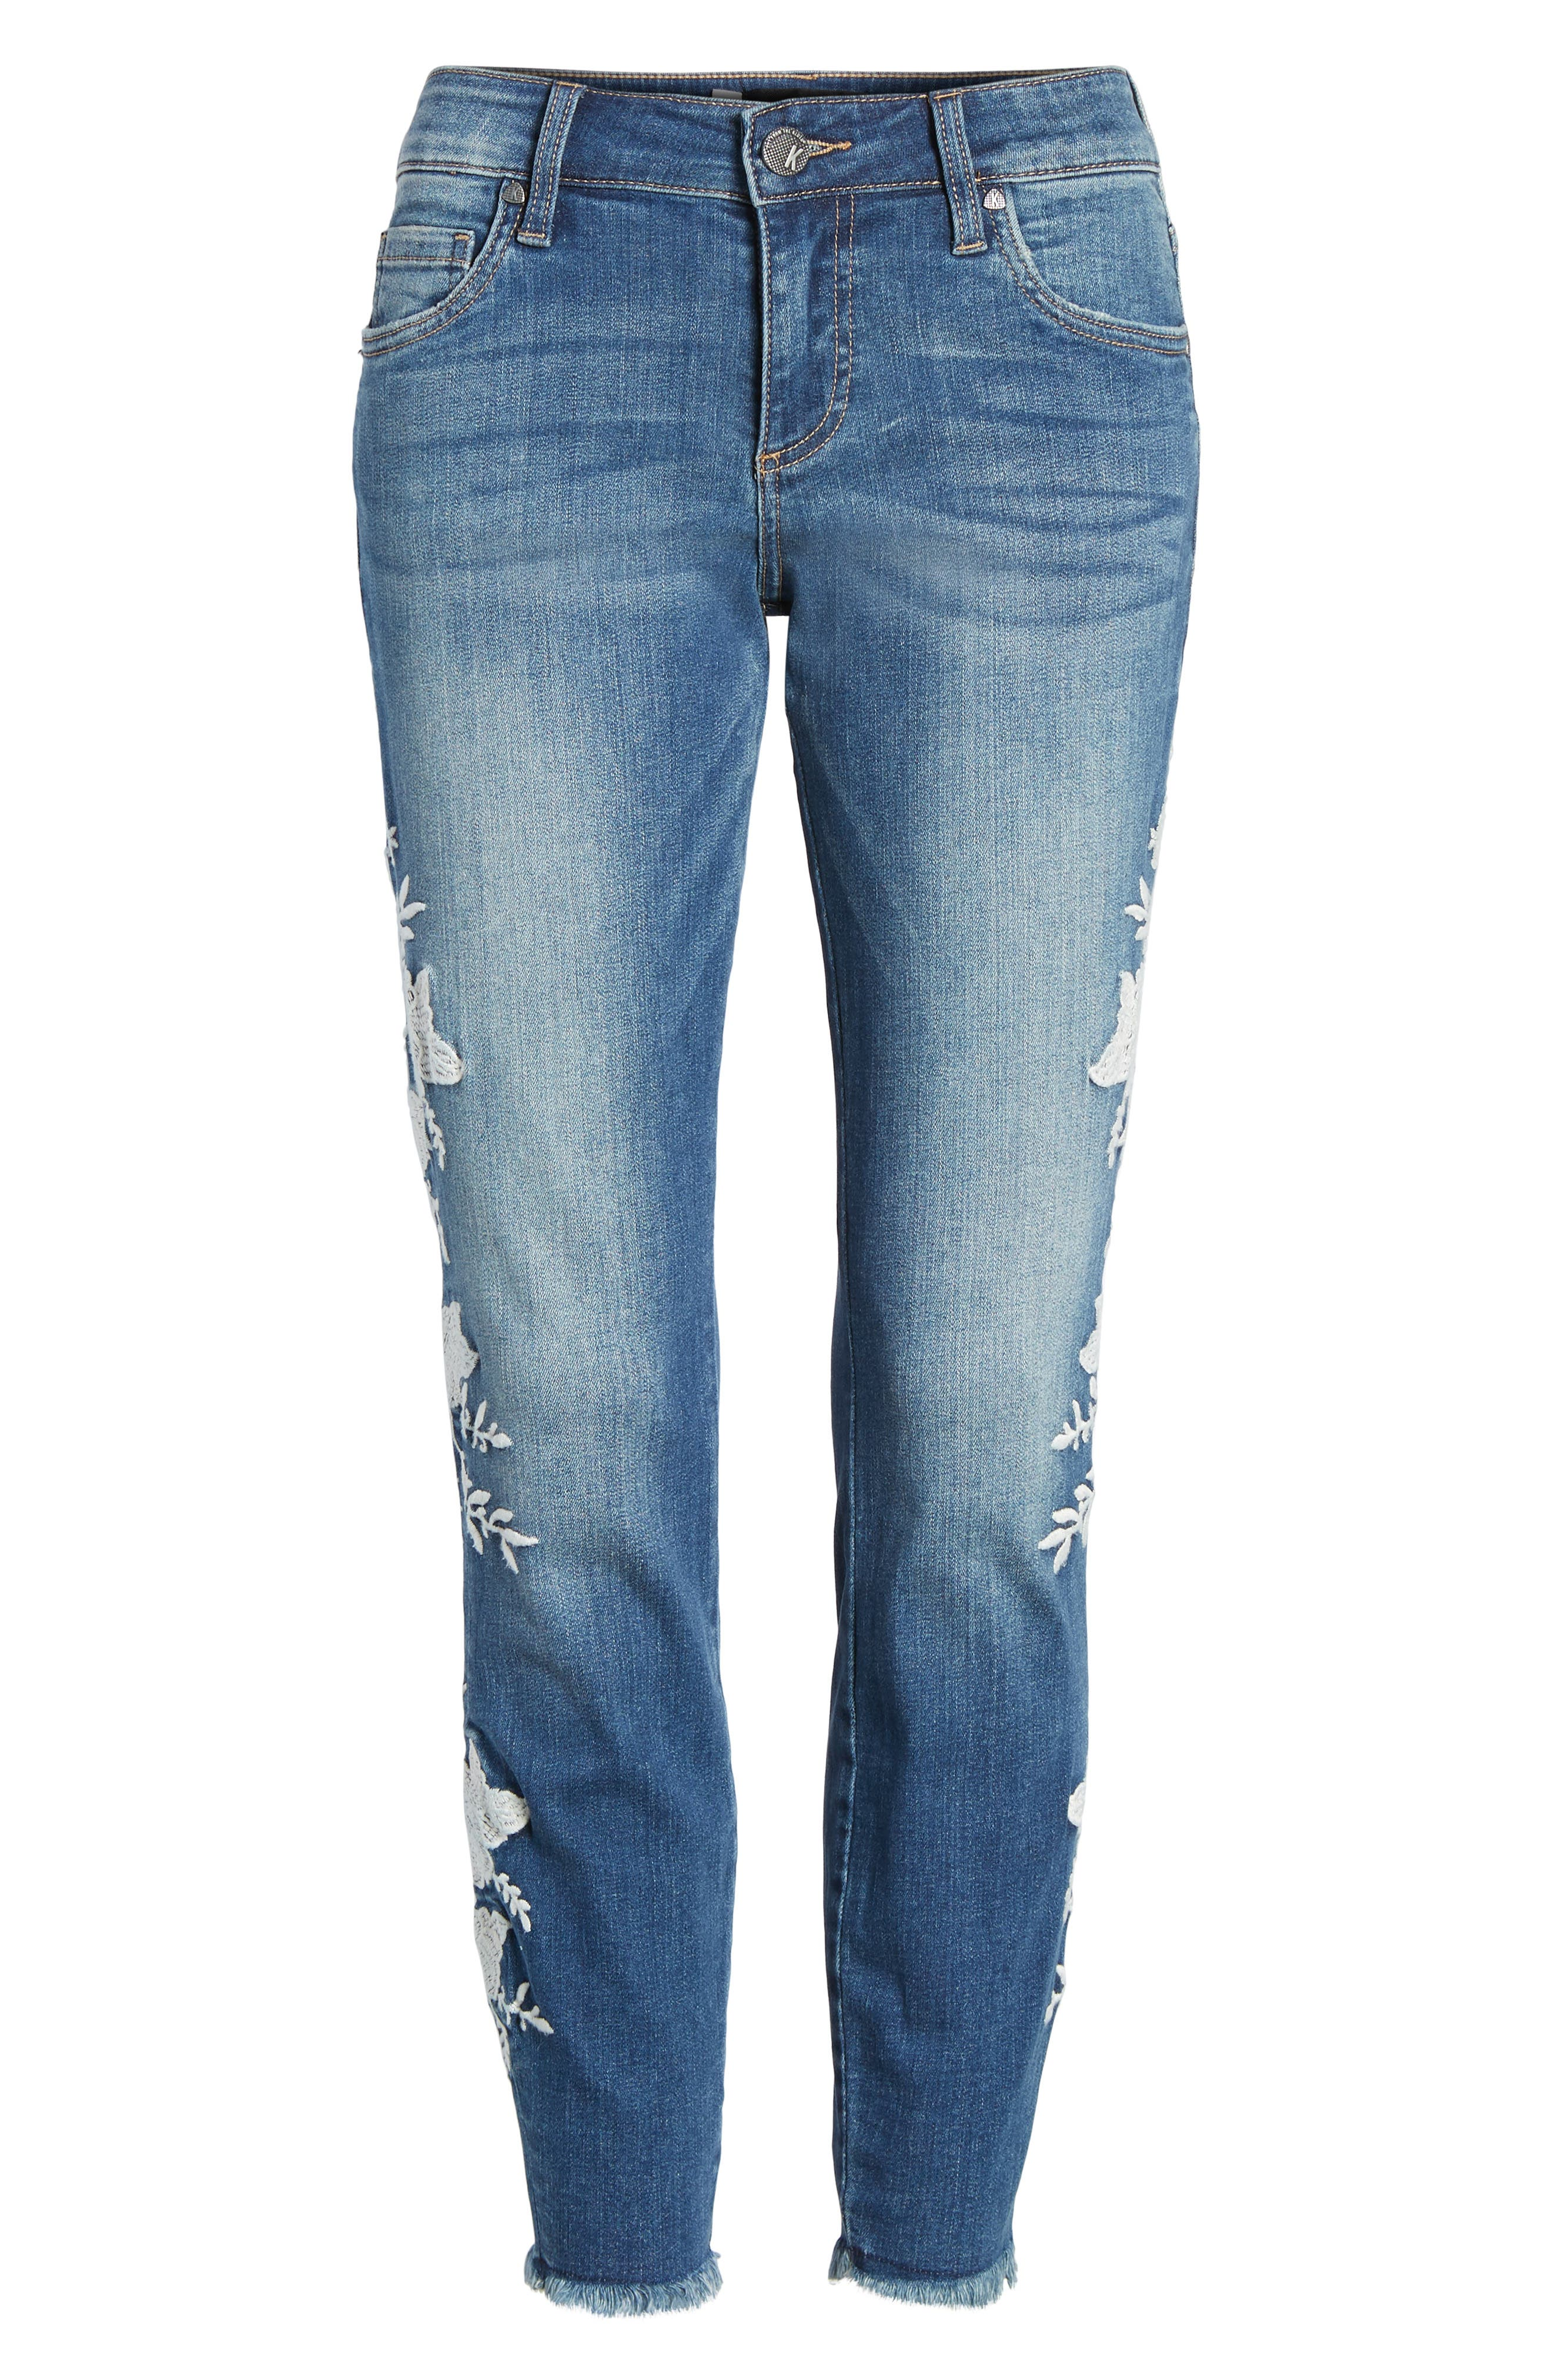 KUT KOLLECTION,                             KUT from the Kloth Connie Embroidered Skinny Jeans,                             Alternate thumbnail 7, color,                             400